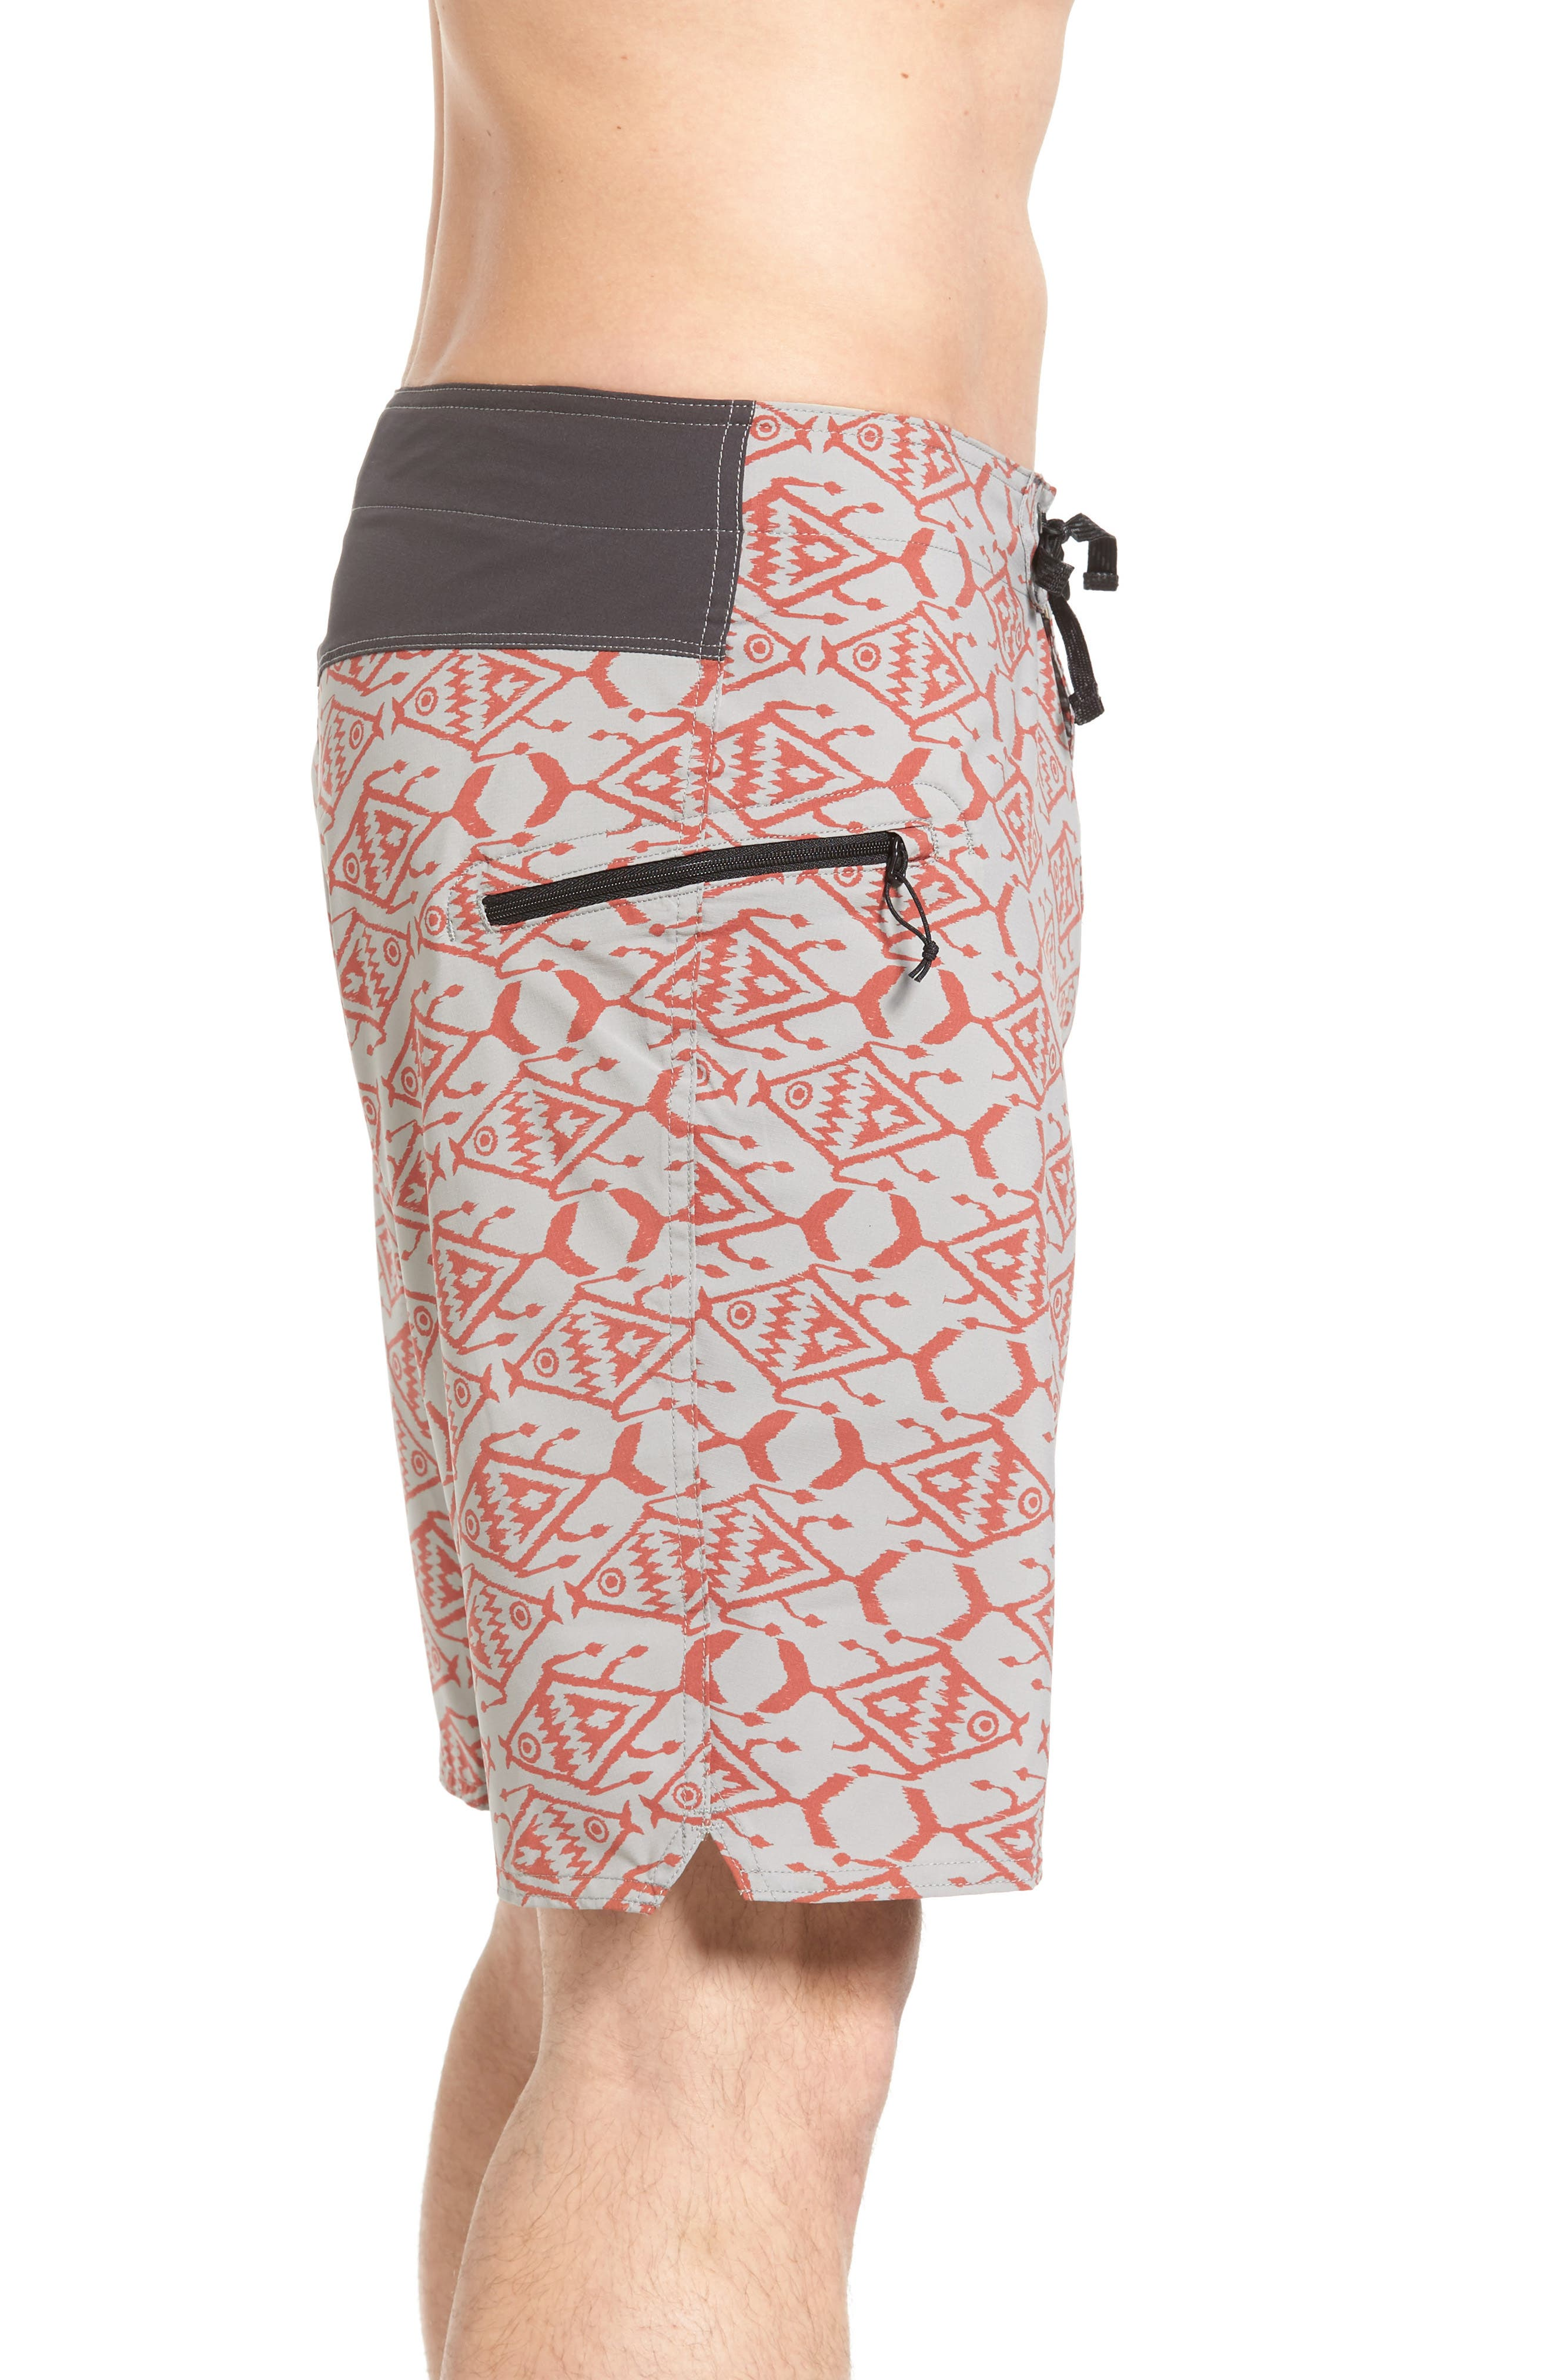 Stretch Planing Board Shorts,                             Alternate thumbnail 3, color,                             Spiced Coral